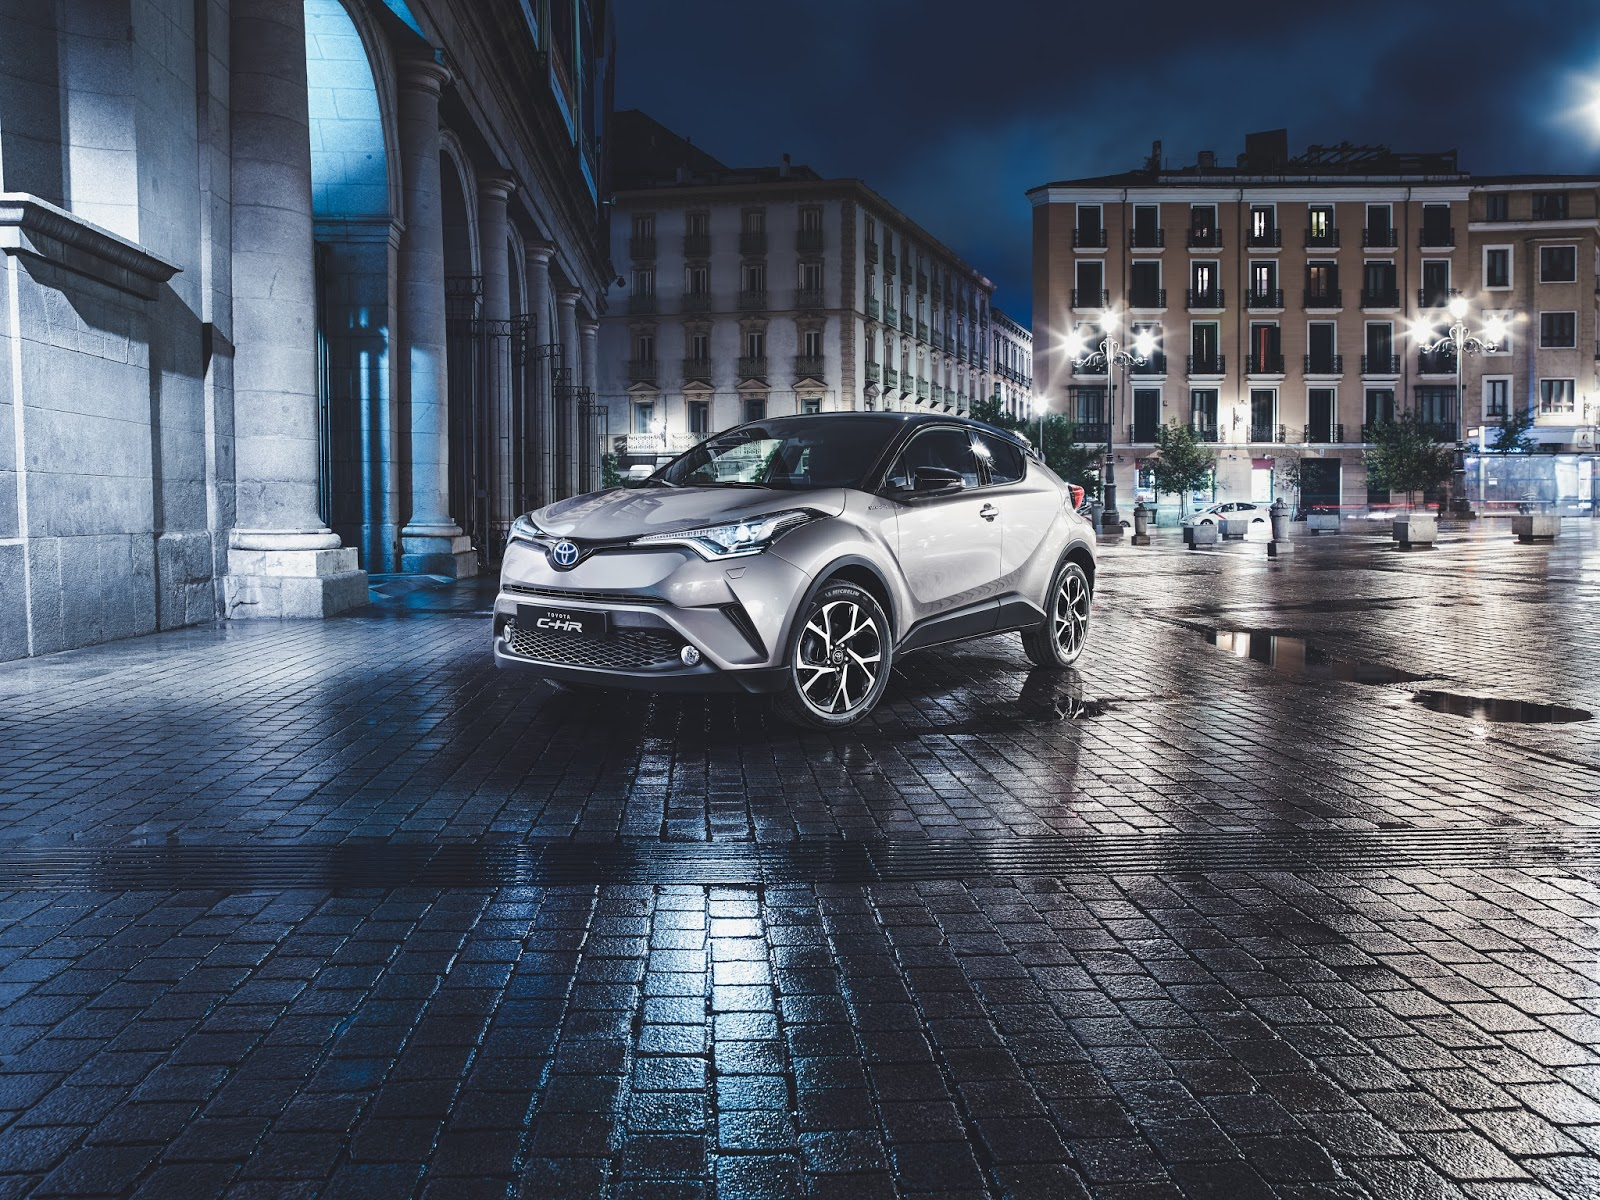 the night that flows toyota c-hr